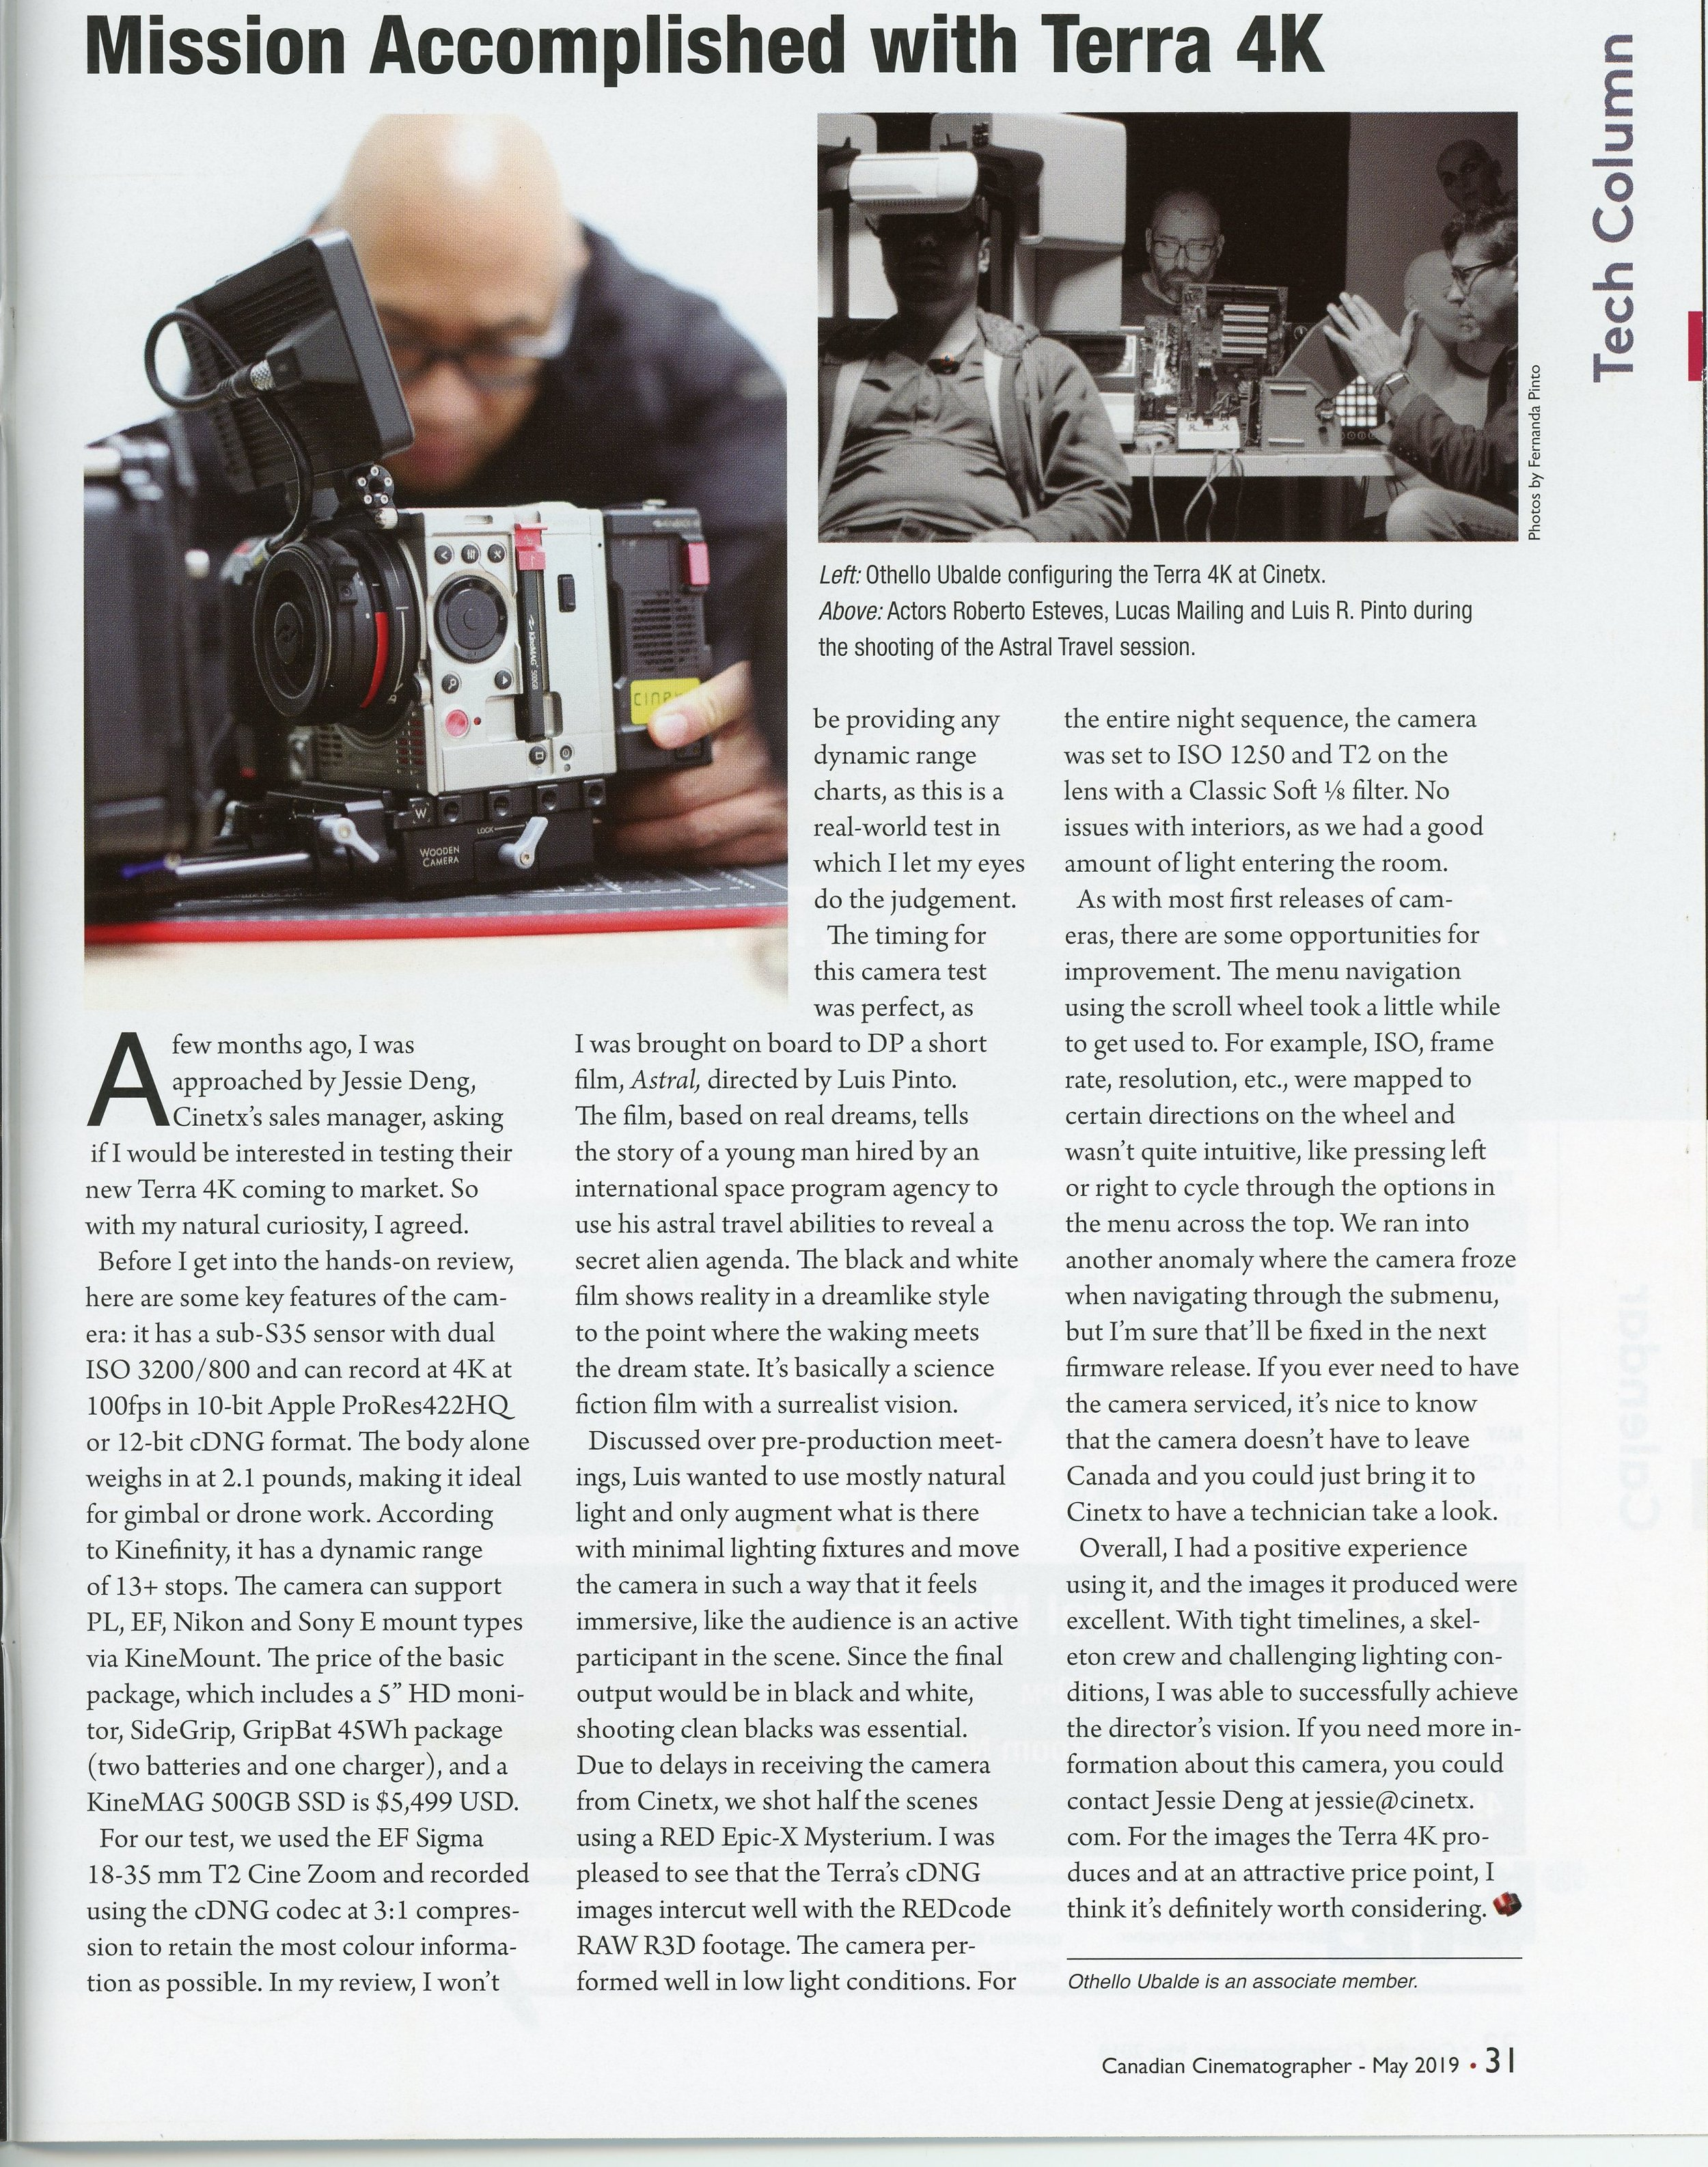 Canadian Cinematographer, May 2019.